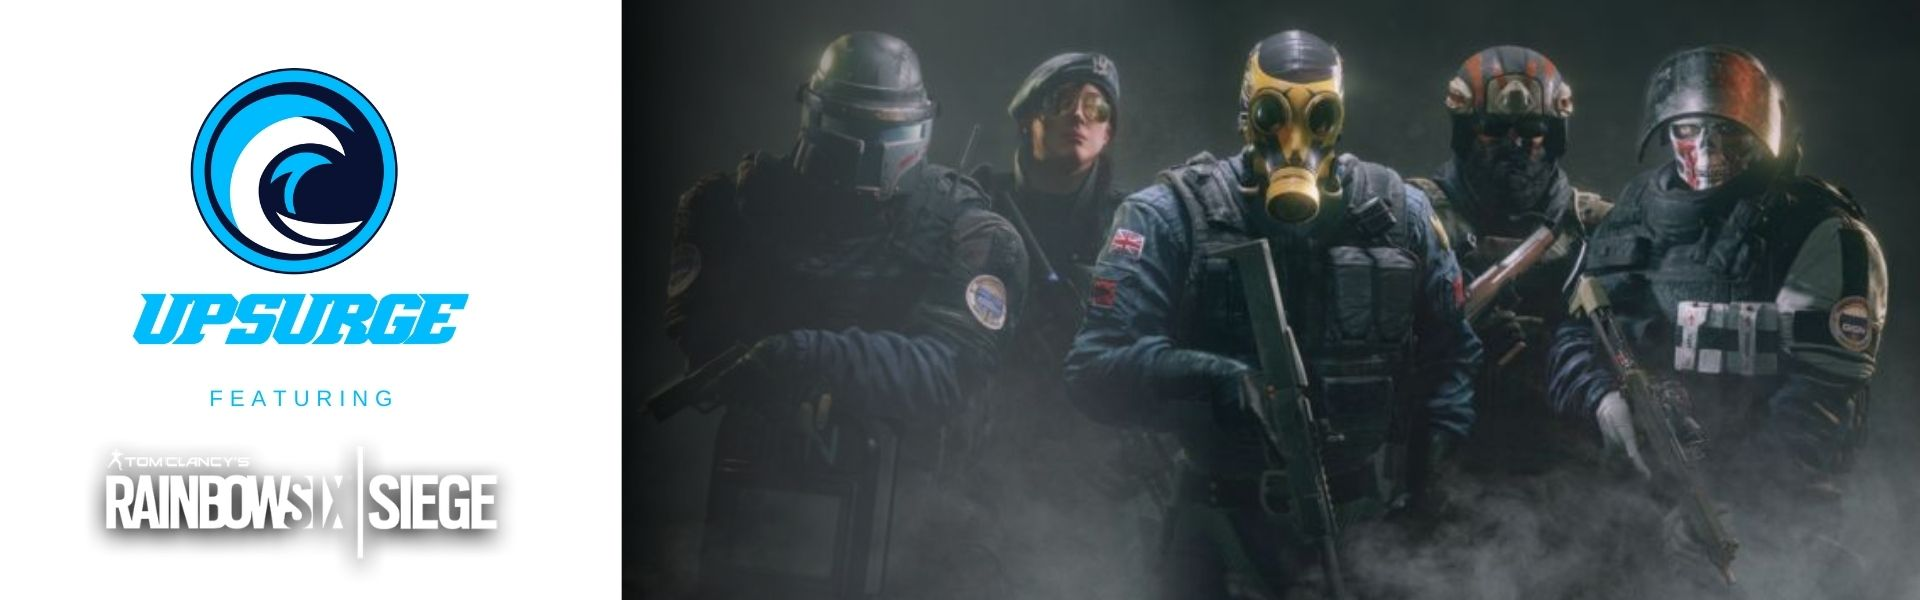 Upsurge Premier League - Rainbow Six - Winter 2021